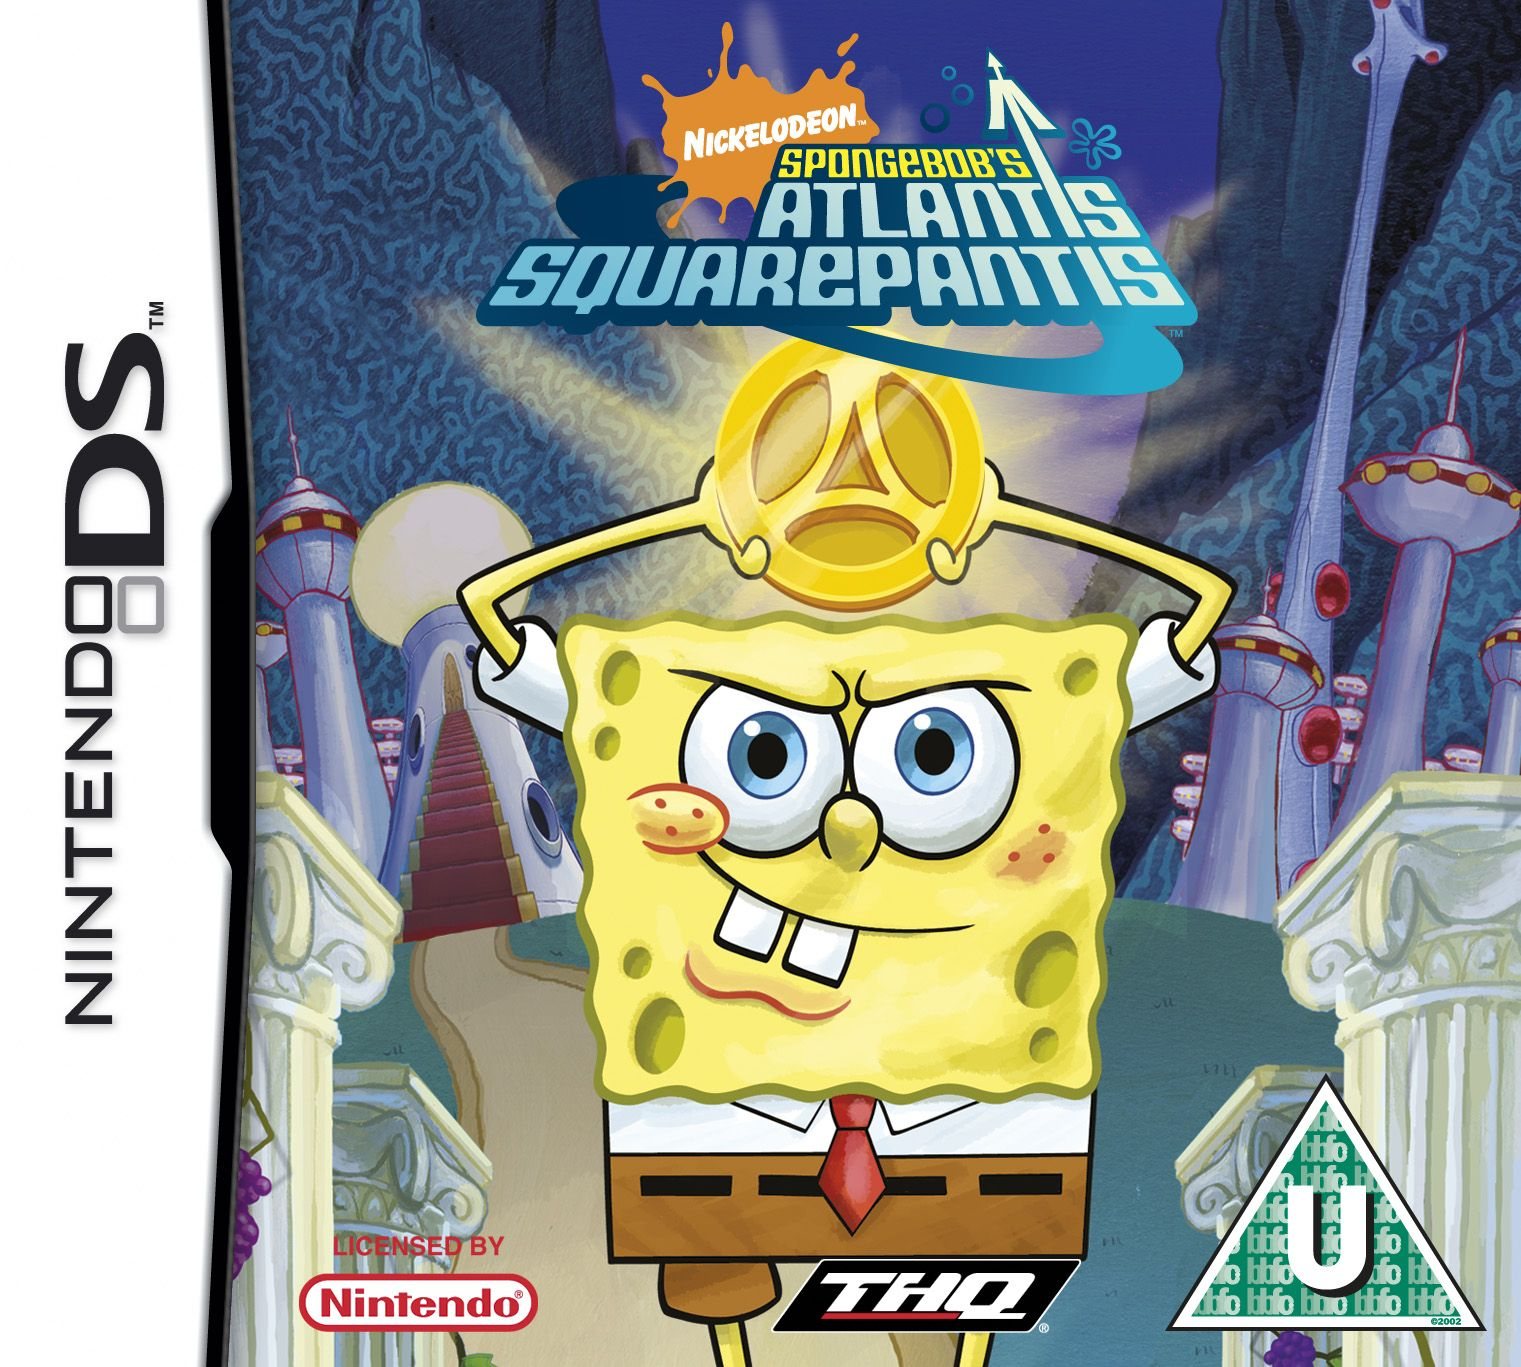 Nintendo DS Game Ds games, Spongebob games, Spongebob